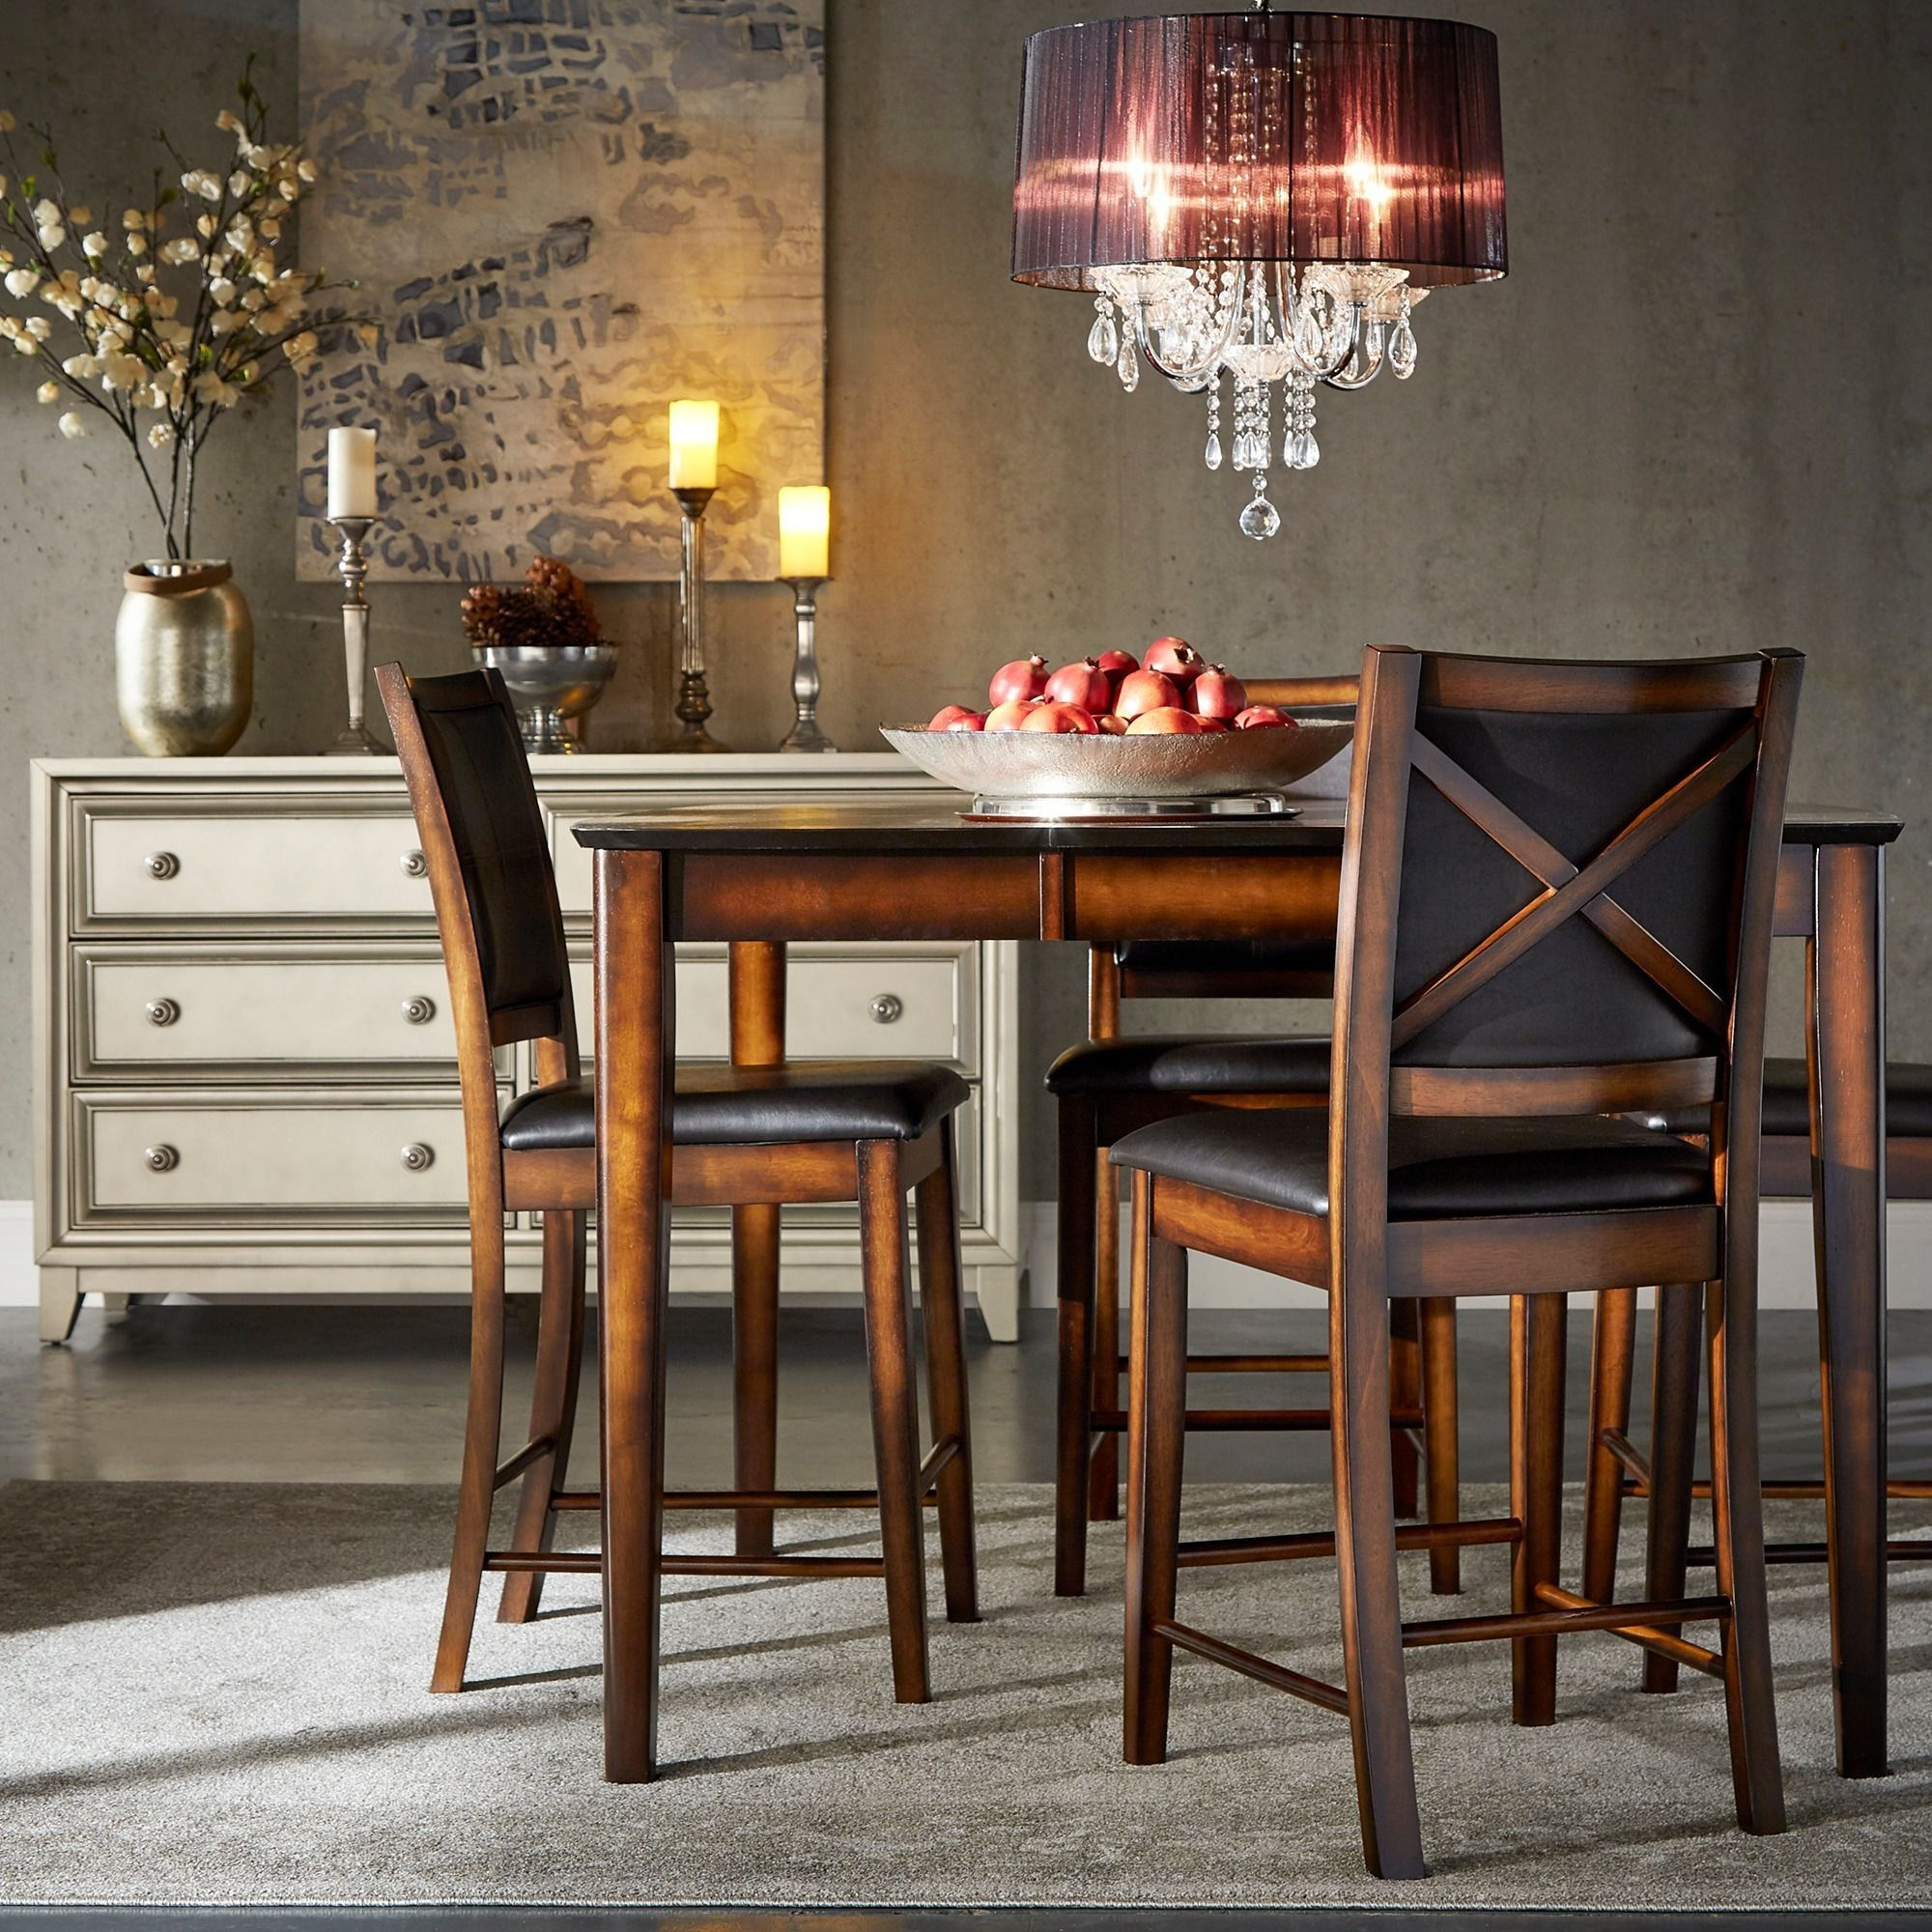 Frisco Bay Burnished Oak 24inch Counter Chairs (Set of 2